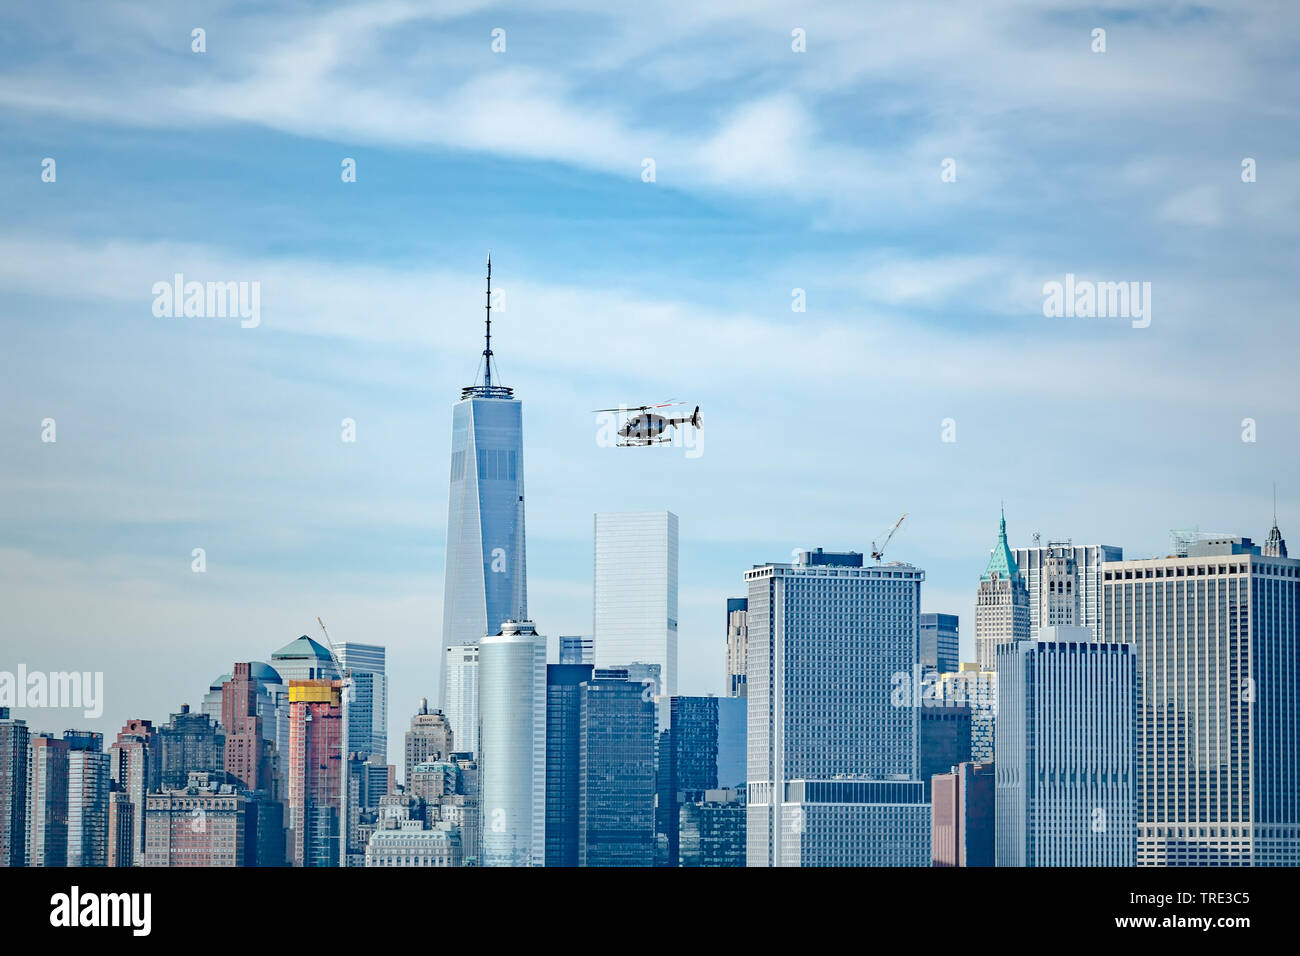 Helikopter ueber New York, One World Trade Centre, USA, New York City | helicopter over New York, One World Trade Centre, USA, New York City | BLWS516 - Stock Image